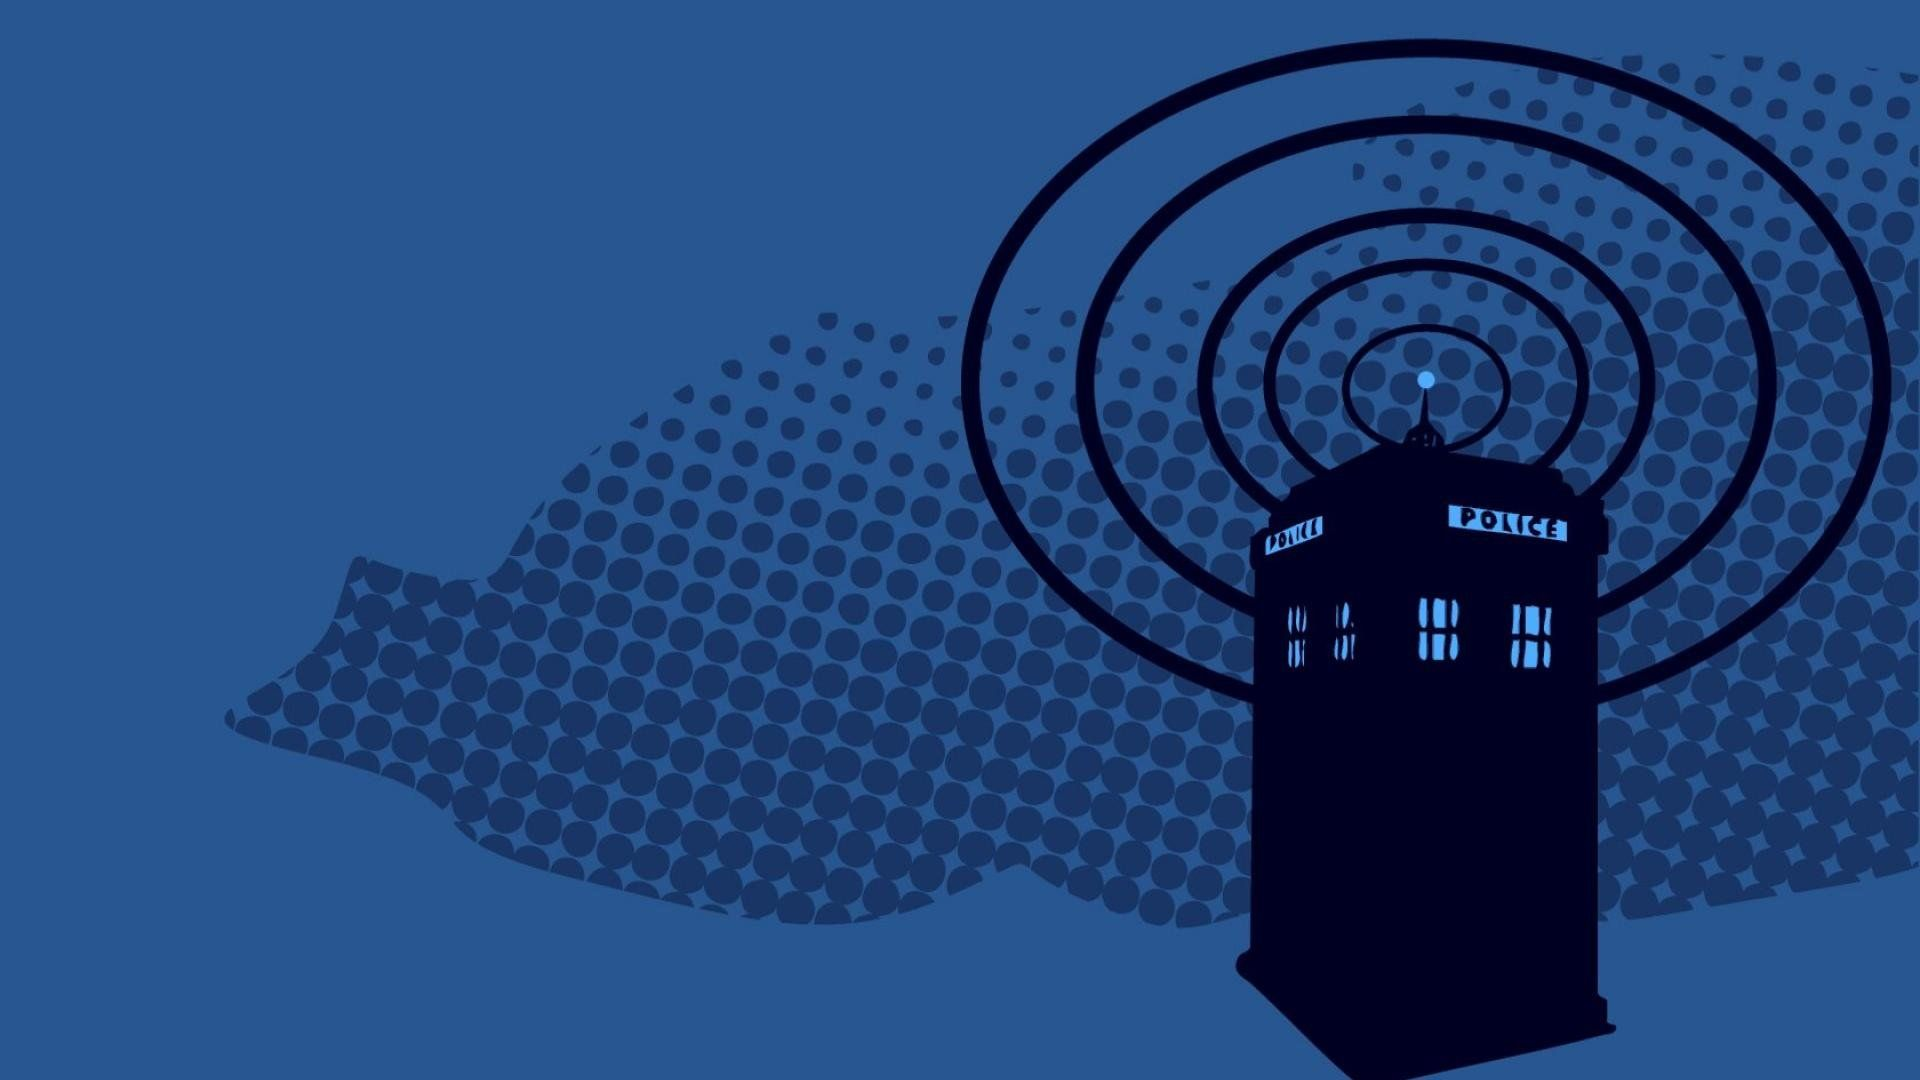 Wallpapers Px, Dwho, Adventure, Bbc, Comedy, Doctor, Drama, Fi Ft